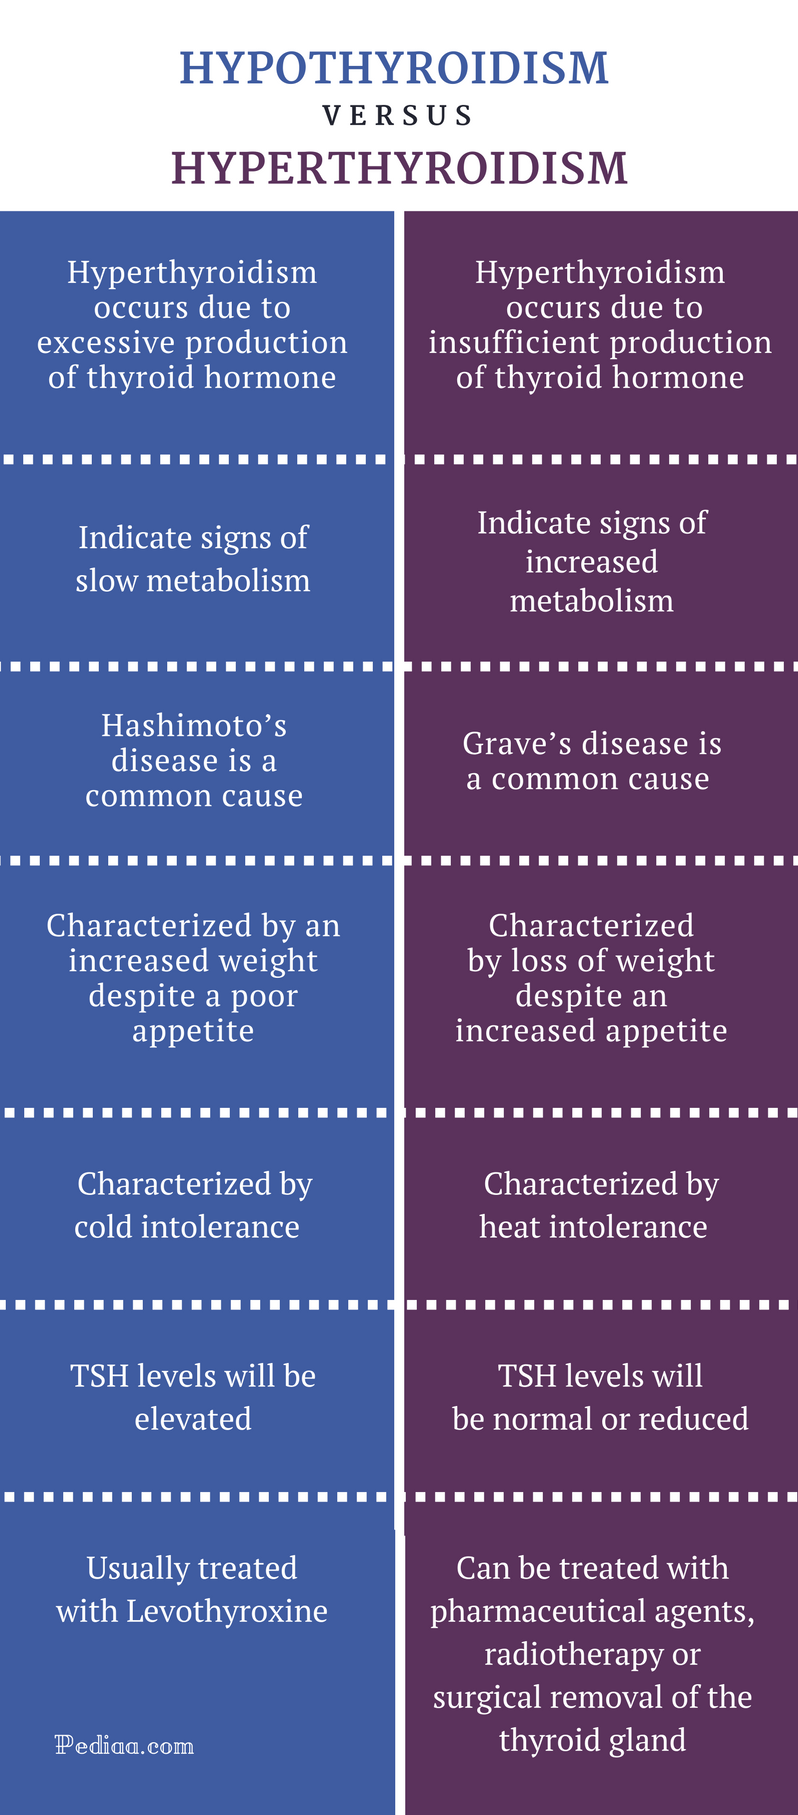 Difference Between Hypothyroidism and Hyperthyroidism - Hypothyroidism vs Hyperthyroidism Comparison Summary